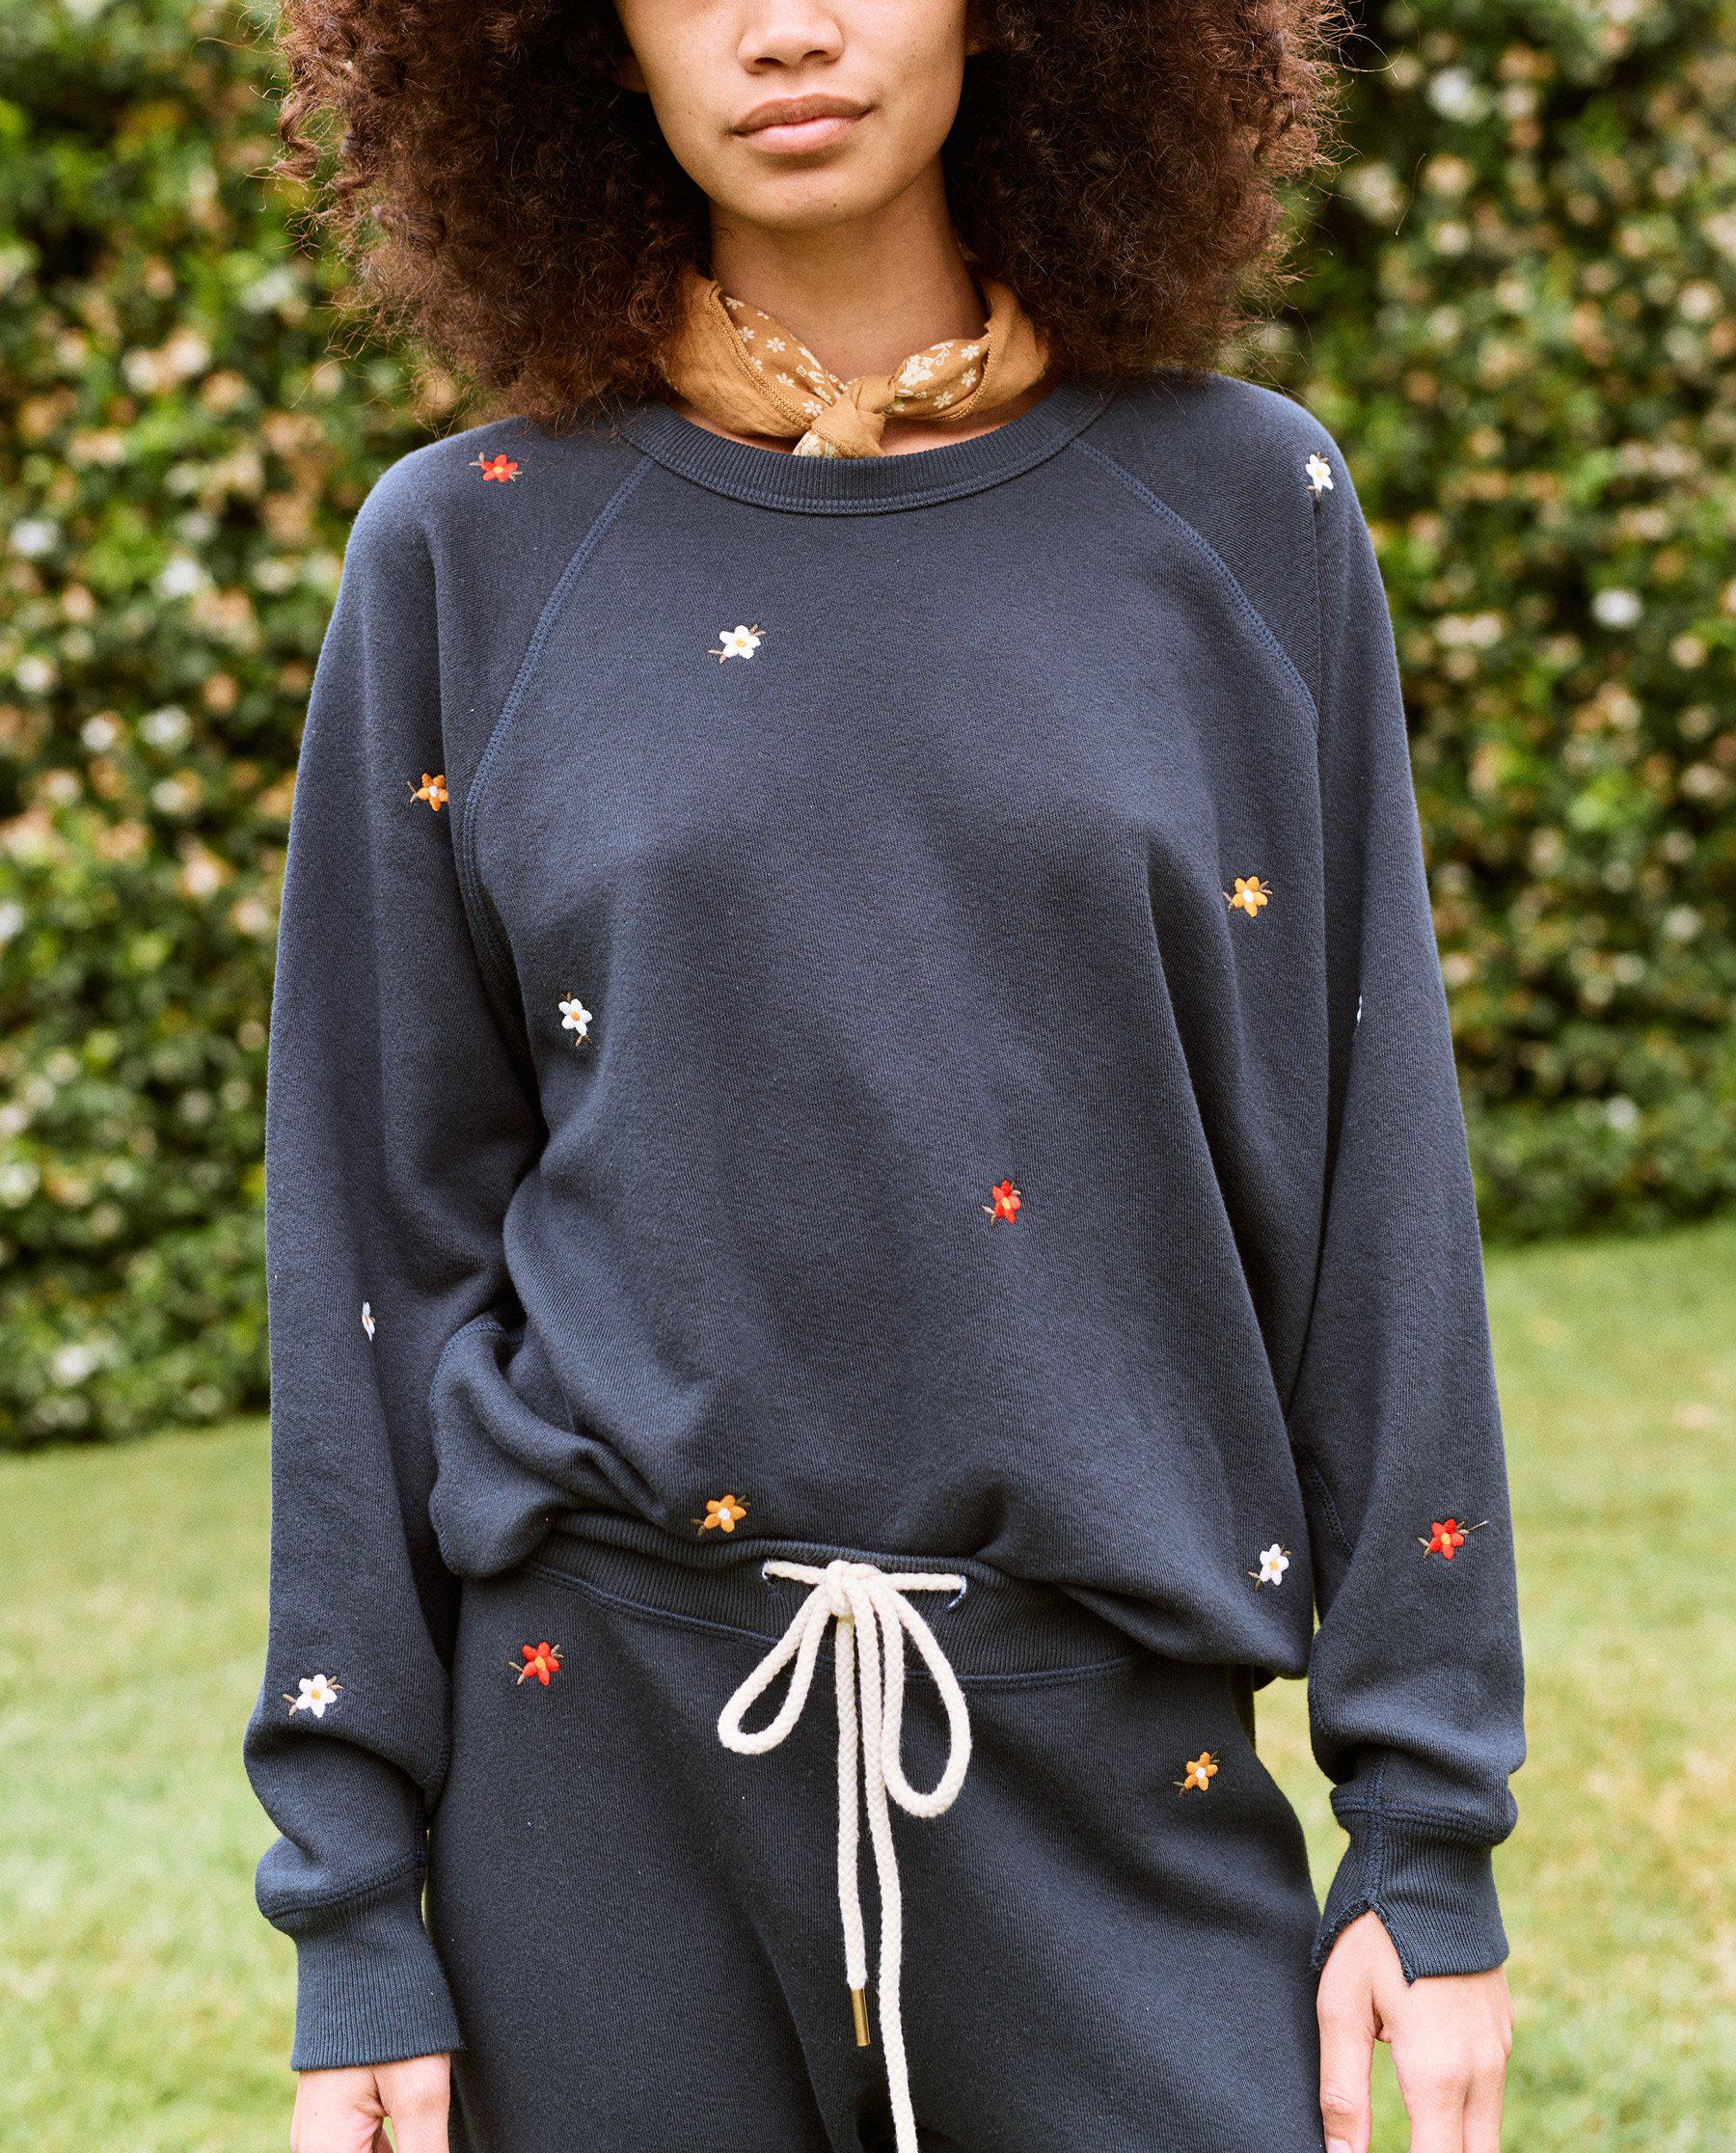 The College Sweatshirt. Embroidered -- Navy with Seed Floral Embroidery